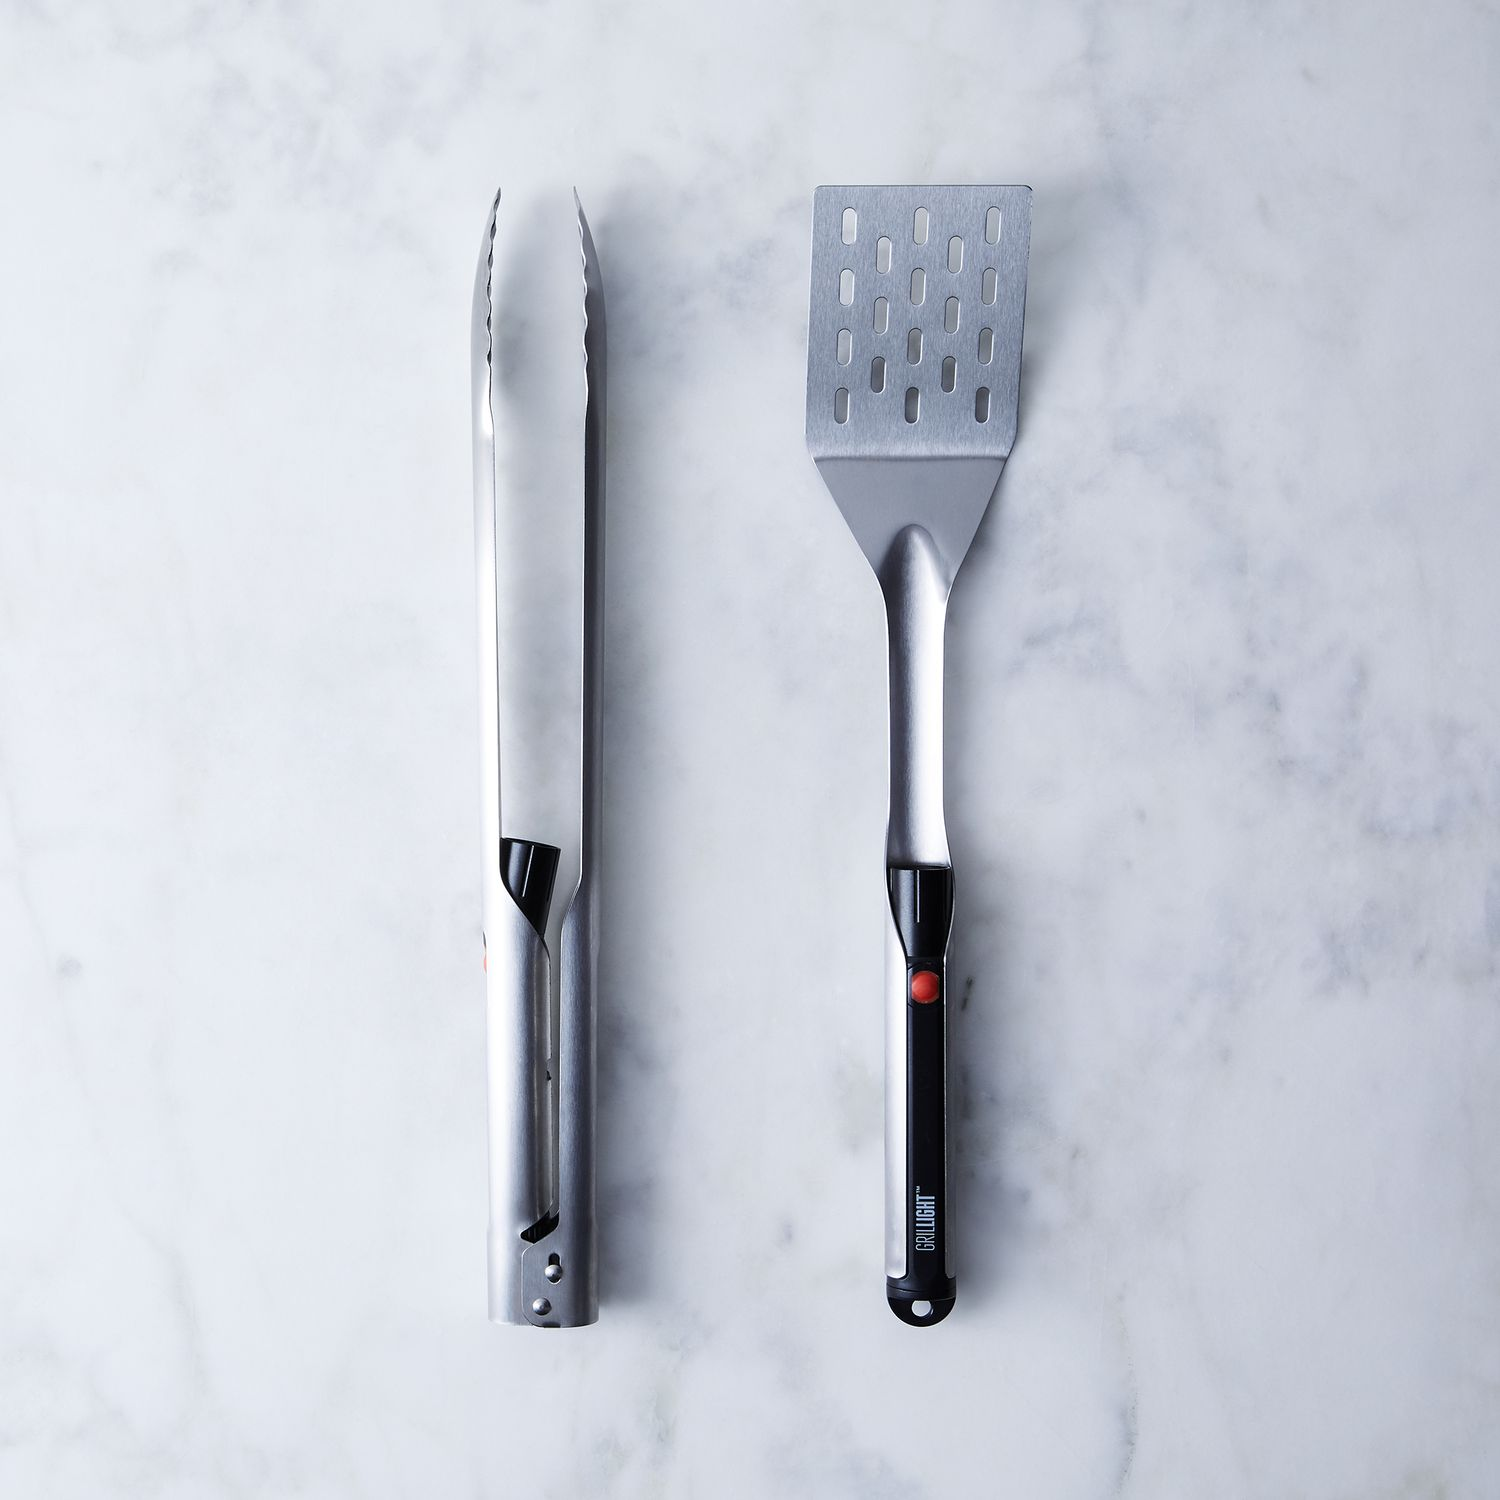 Grillight Tools on Food52